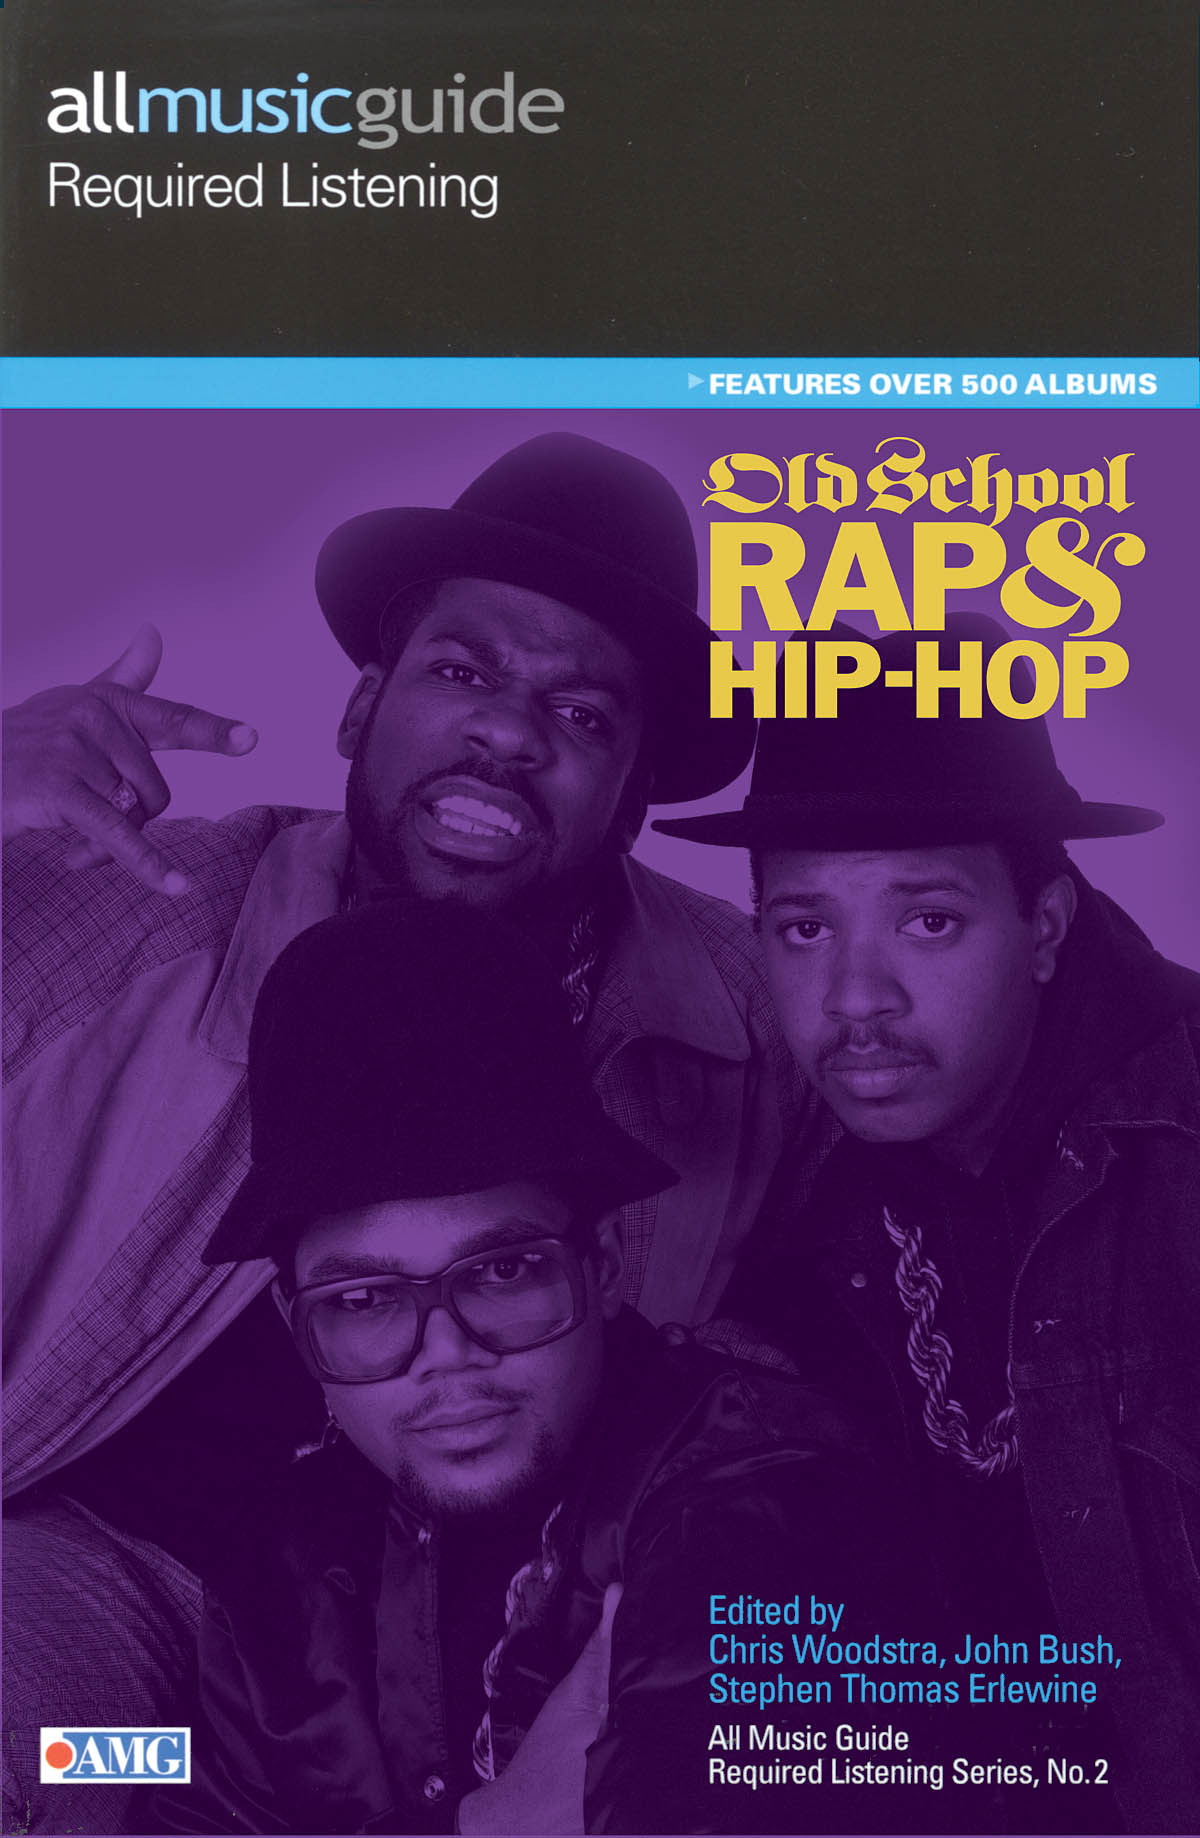 All Music Guide - Old School Rap And Hip-Hop